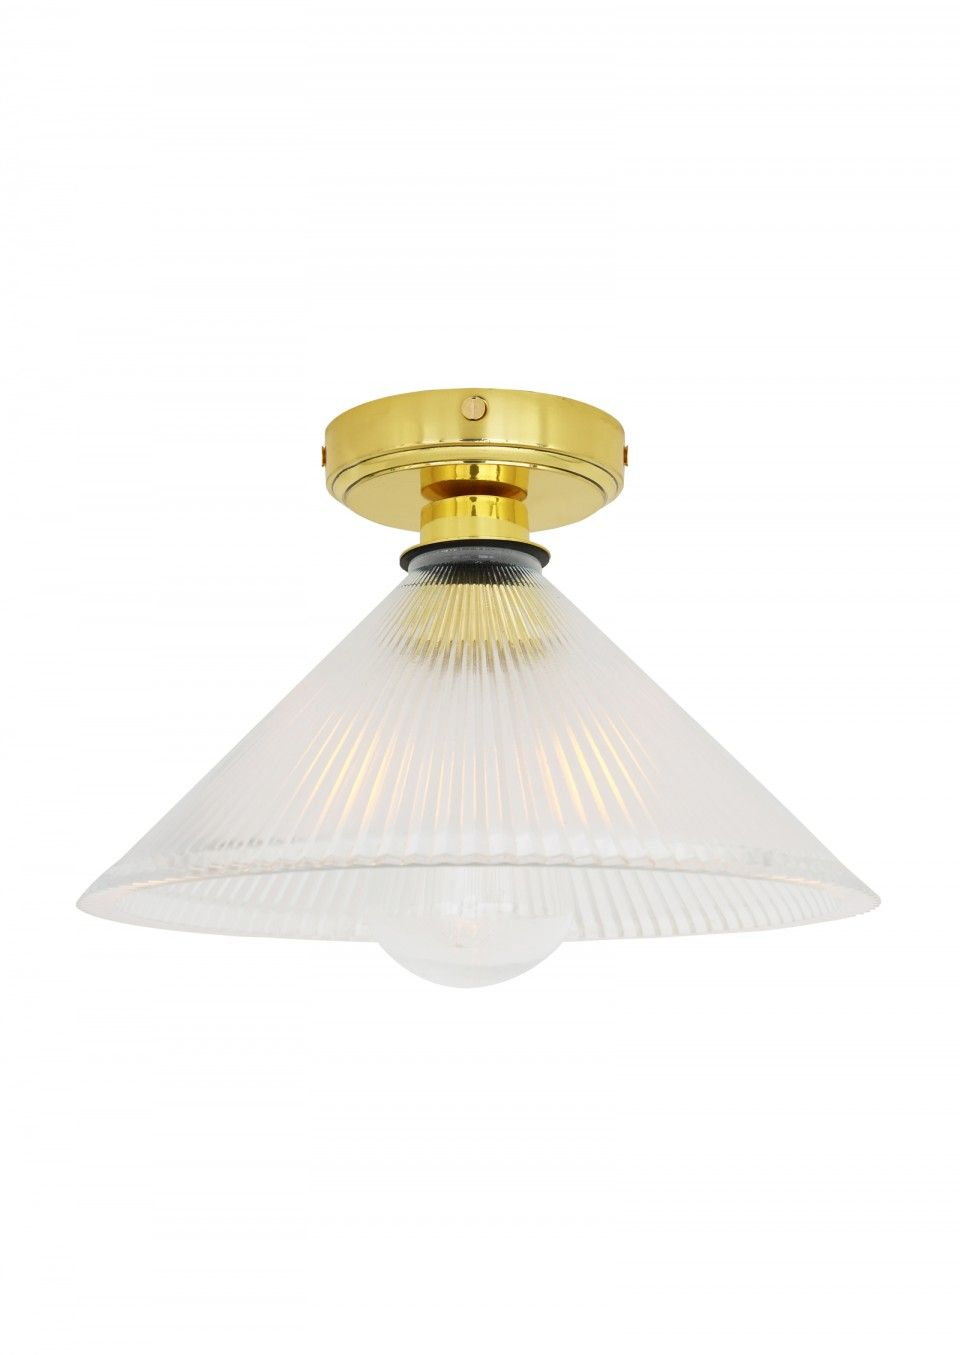 Our Stylish Beck Ceiling Light By Irish Designer Mullan Lighting Is A Traditional Bathroom